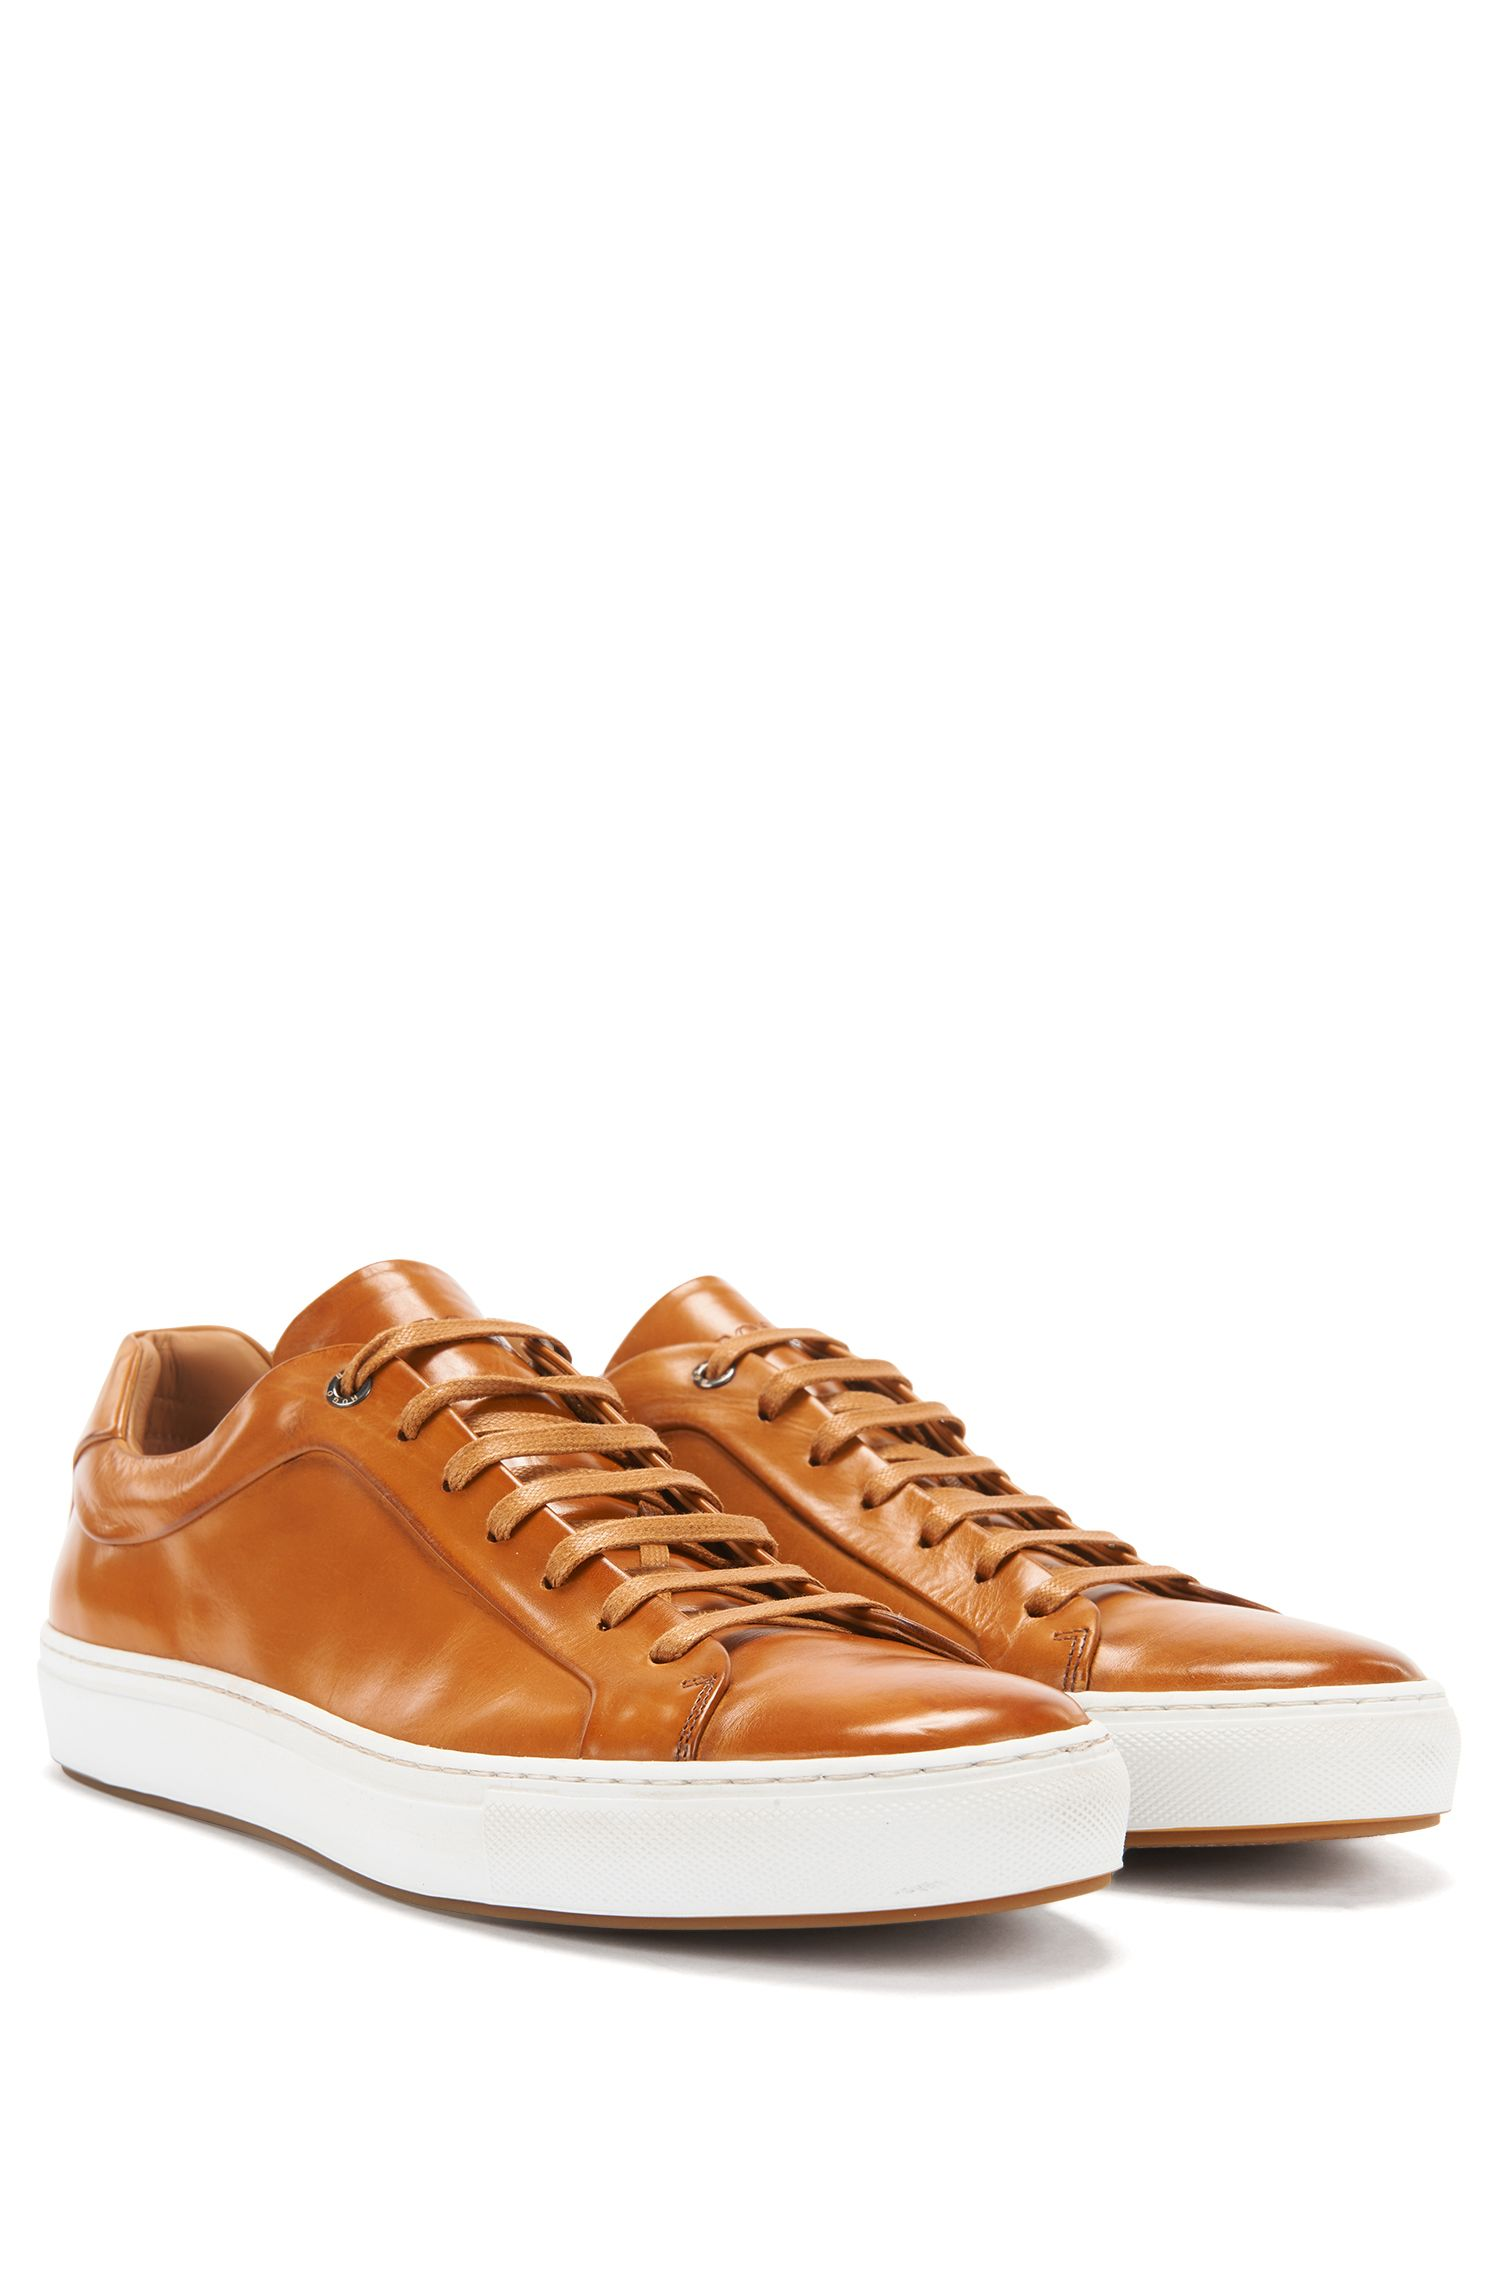 Tennis-style trainers in burnished leather